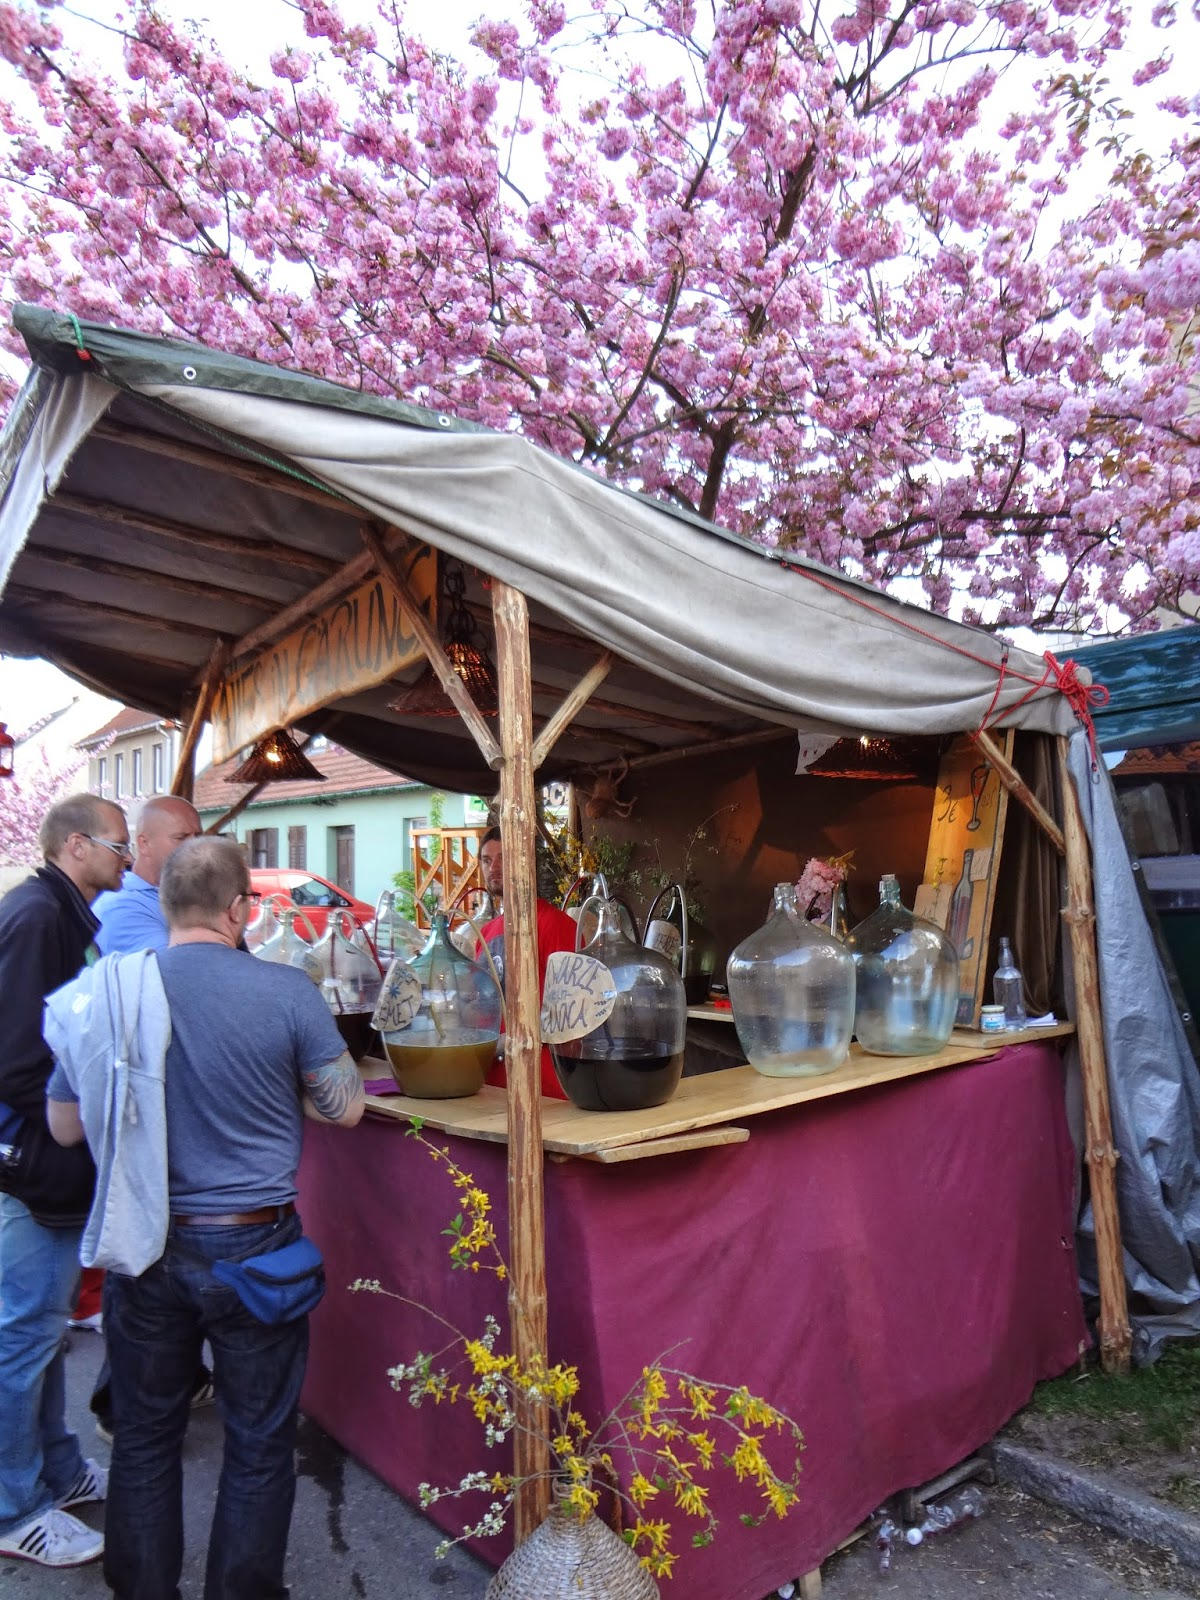 Wines at Germany's Fruit Wine Festival